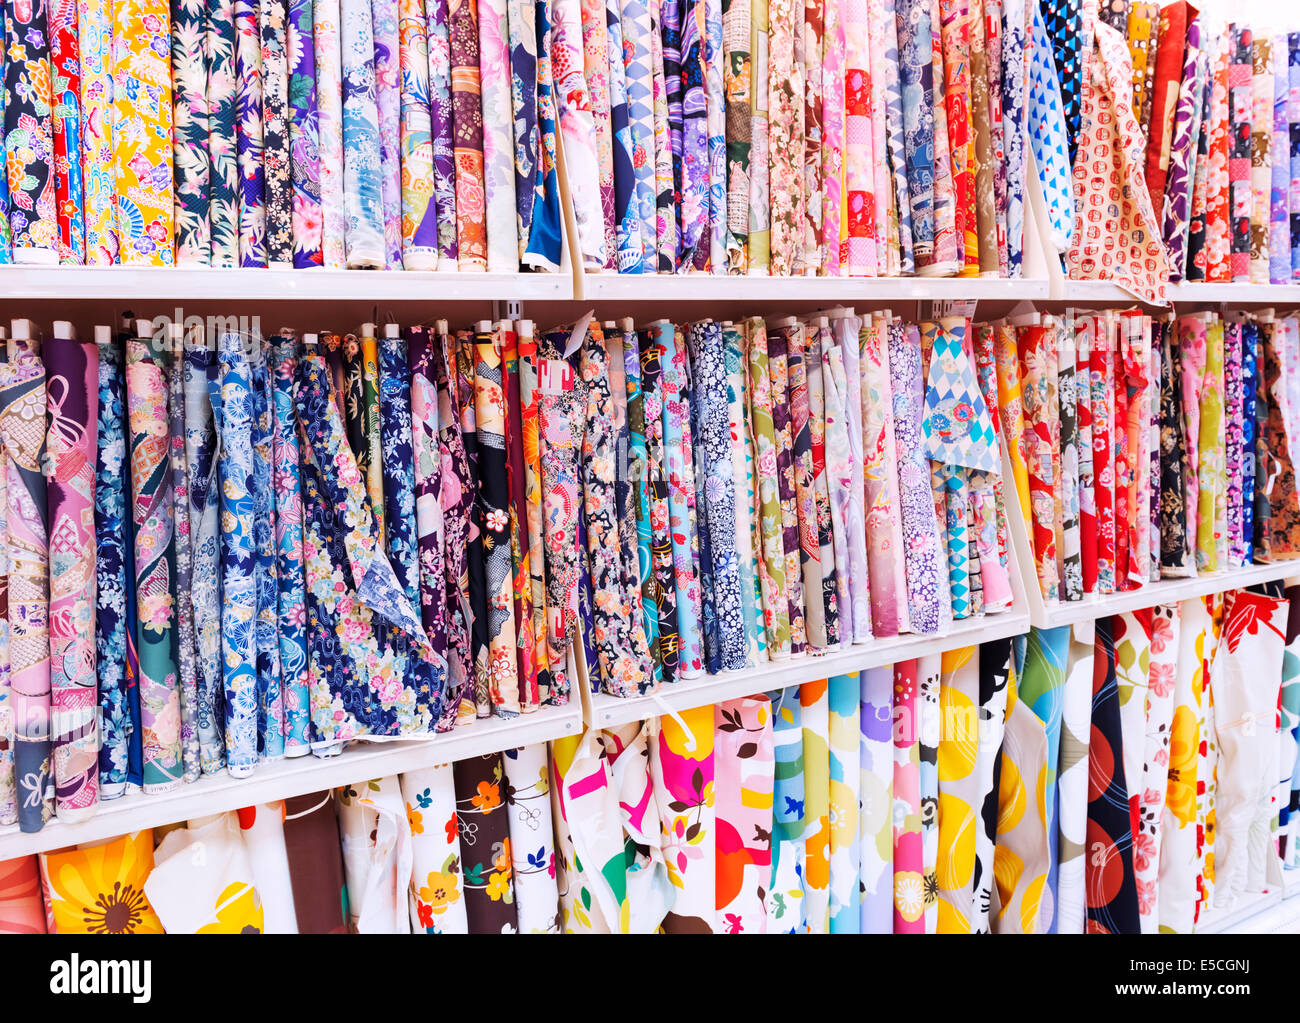 Textiles with colorful patterns on display in a fabric store in Japan - Stock Image